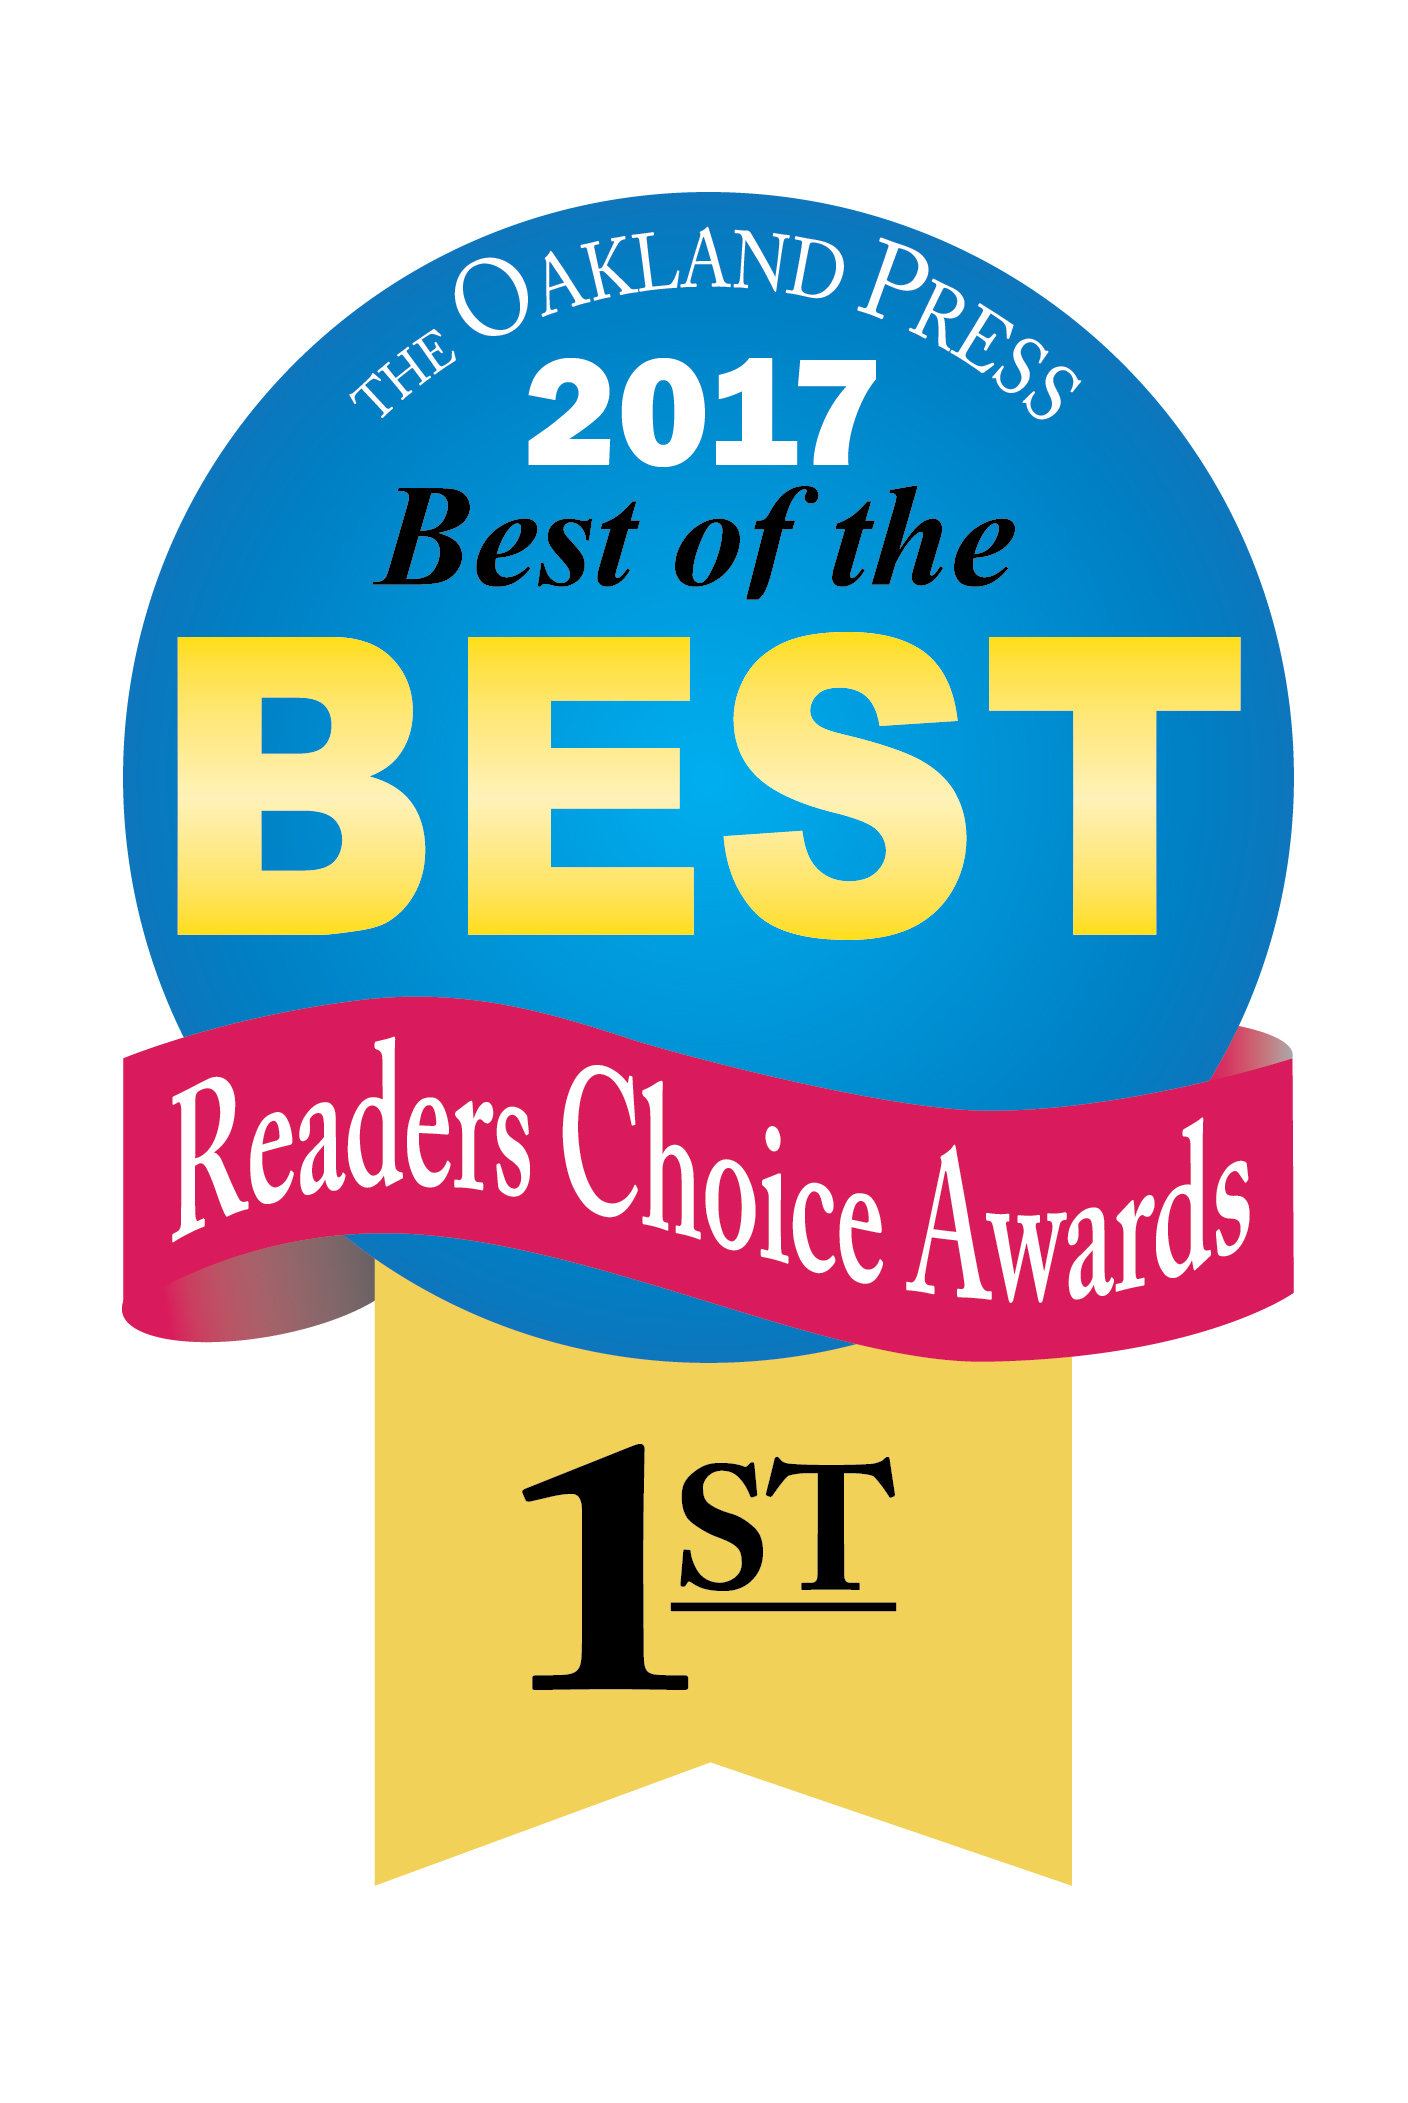 Genisys won 1st place in the Oakland Press's best of the best readers choice awards 2017